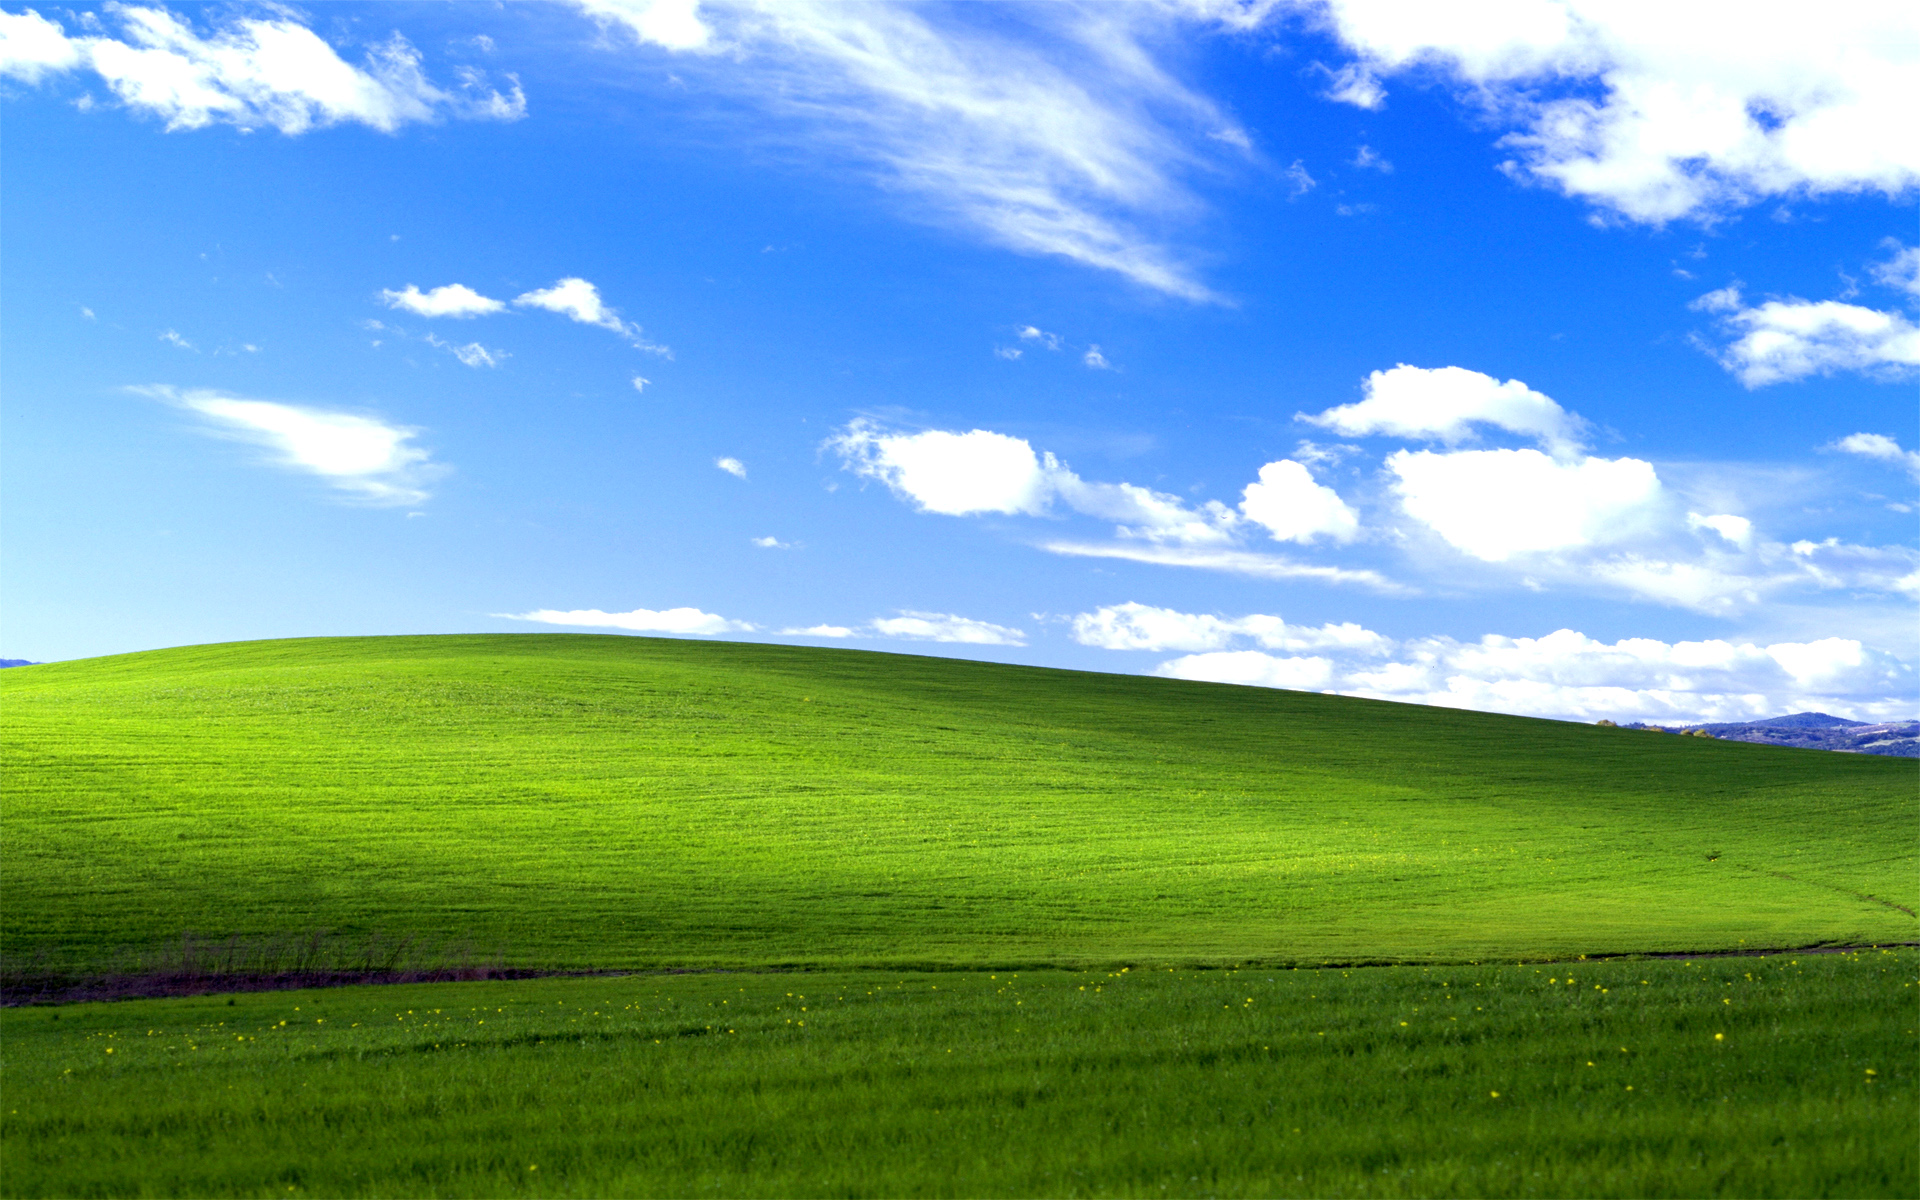 Wallpaper HD Windows Xp